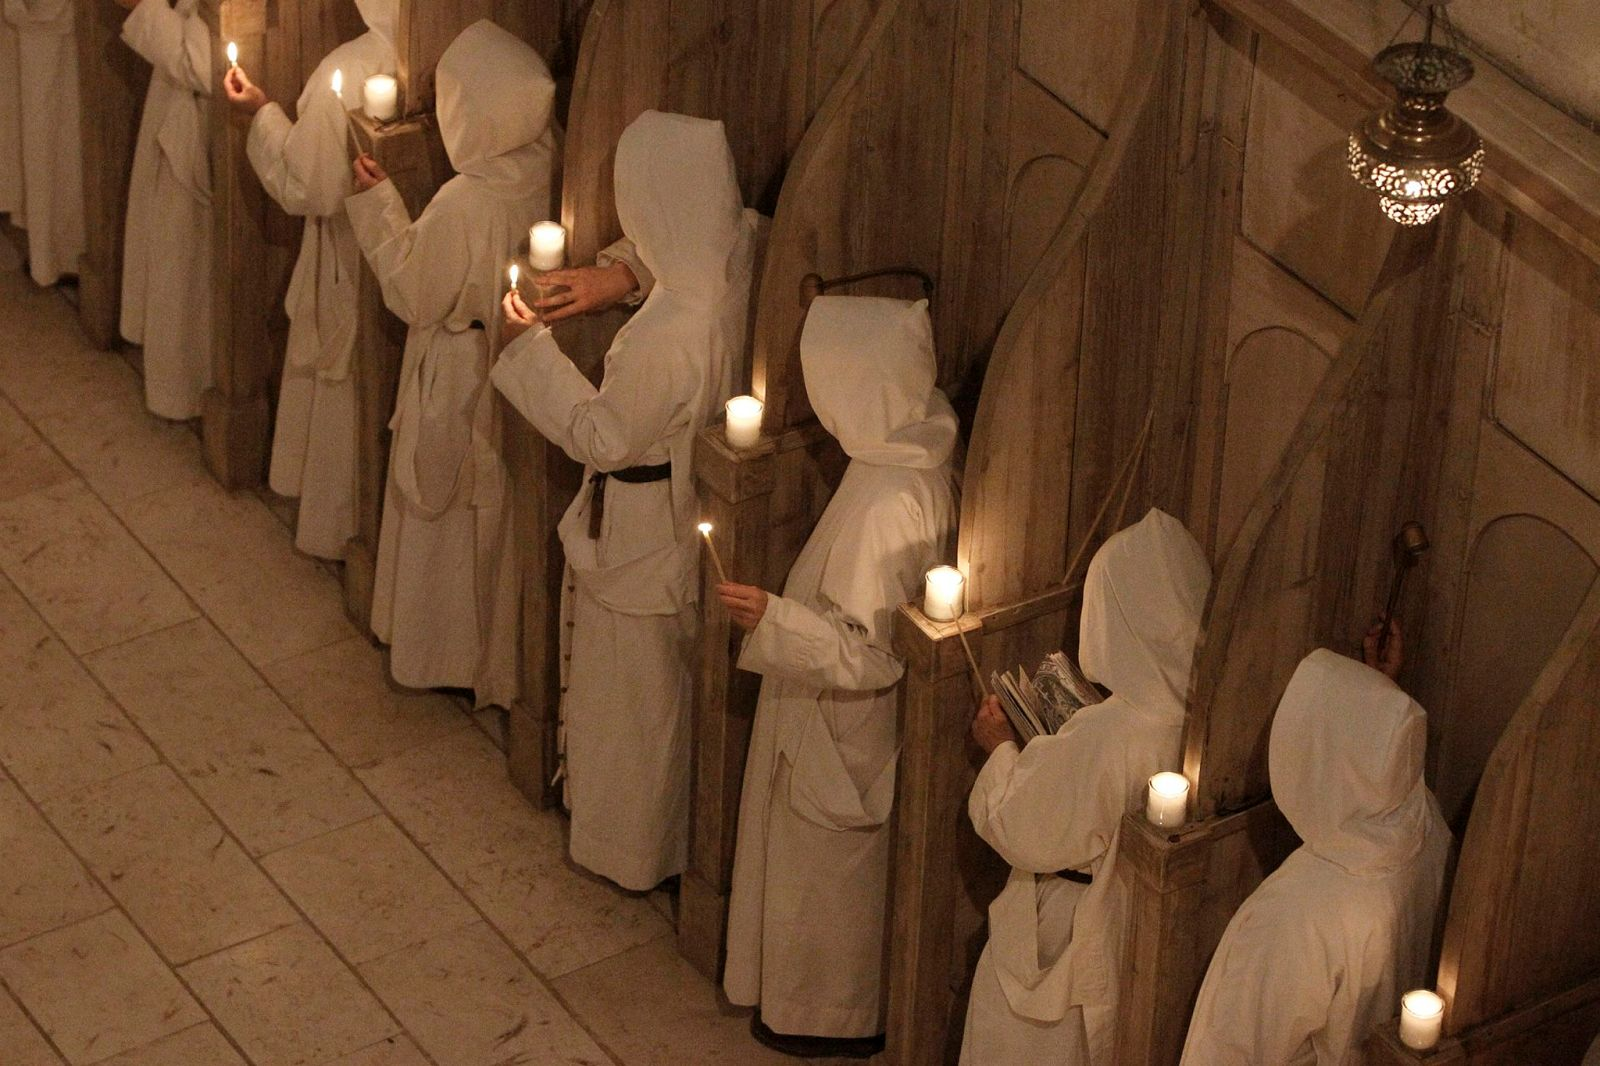 Catholic nuns from the Sisters of Bethlehem pray during midnight mass on Christmas Eve at the Beit Jamal Monastery near Jerusalem. Photo by Miriam Alster/Flash90.